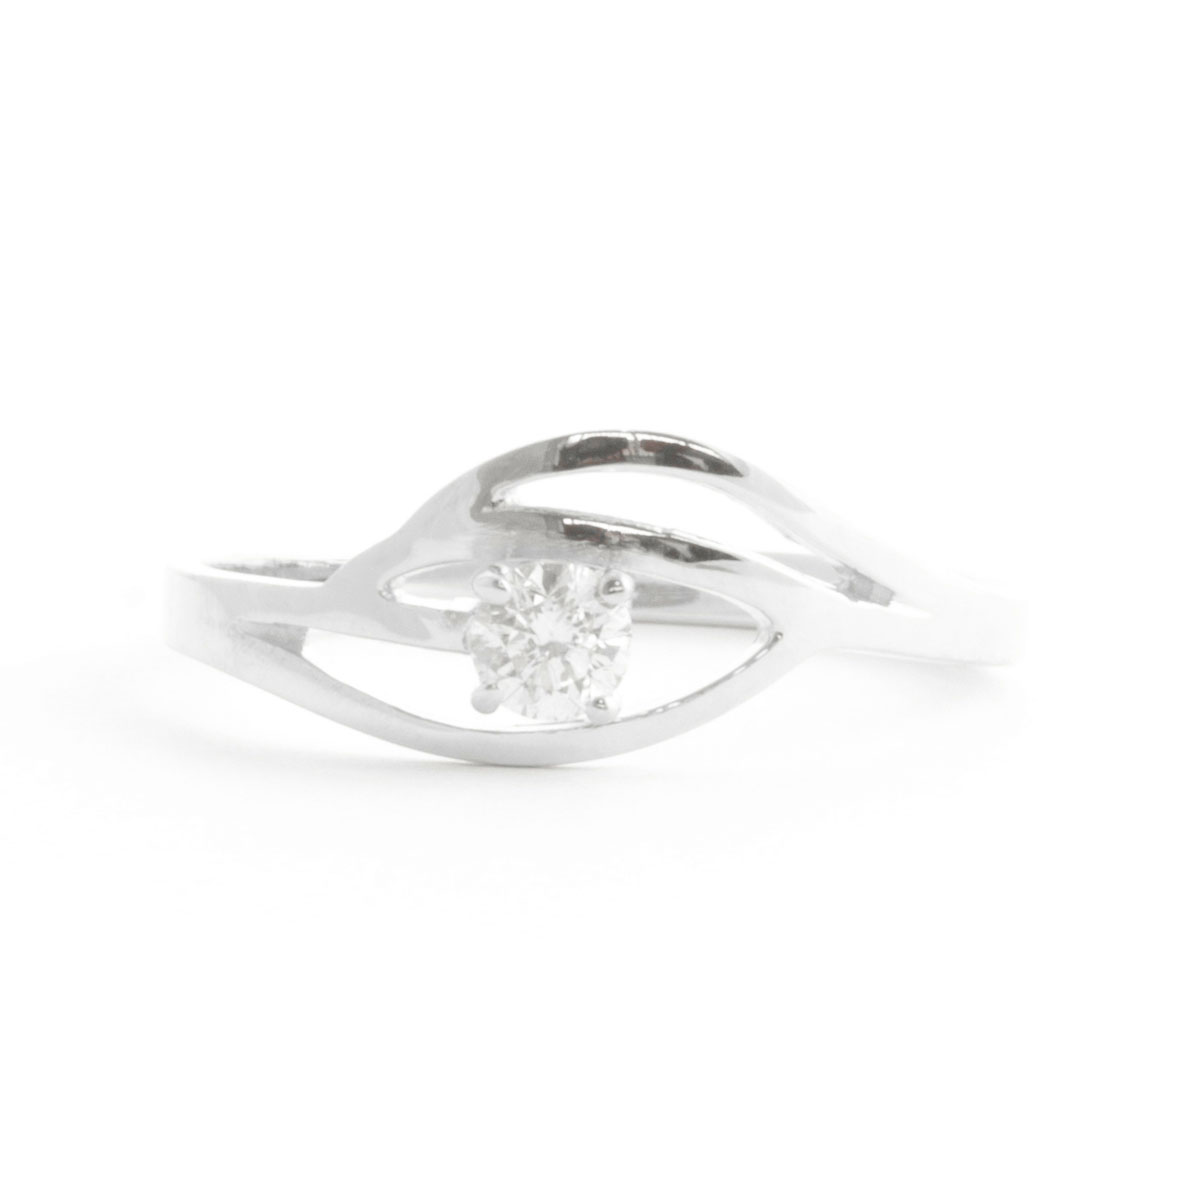 Round Cut Diamond Ring 0.15 ct in 18ct White Gold